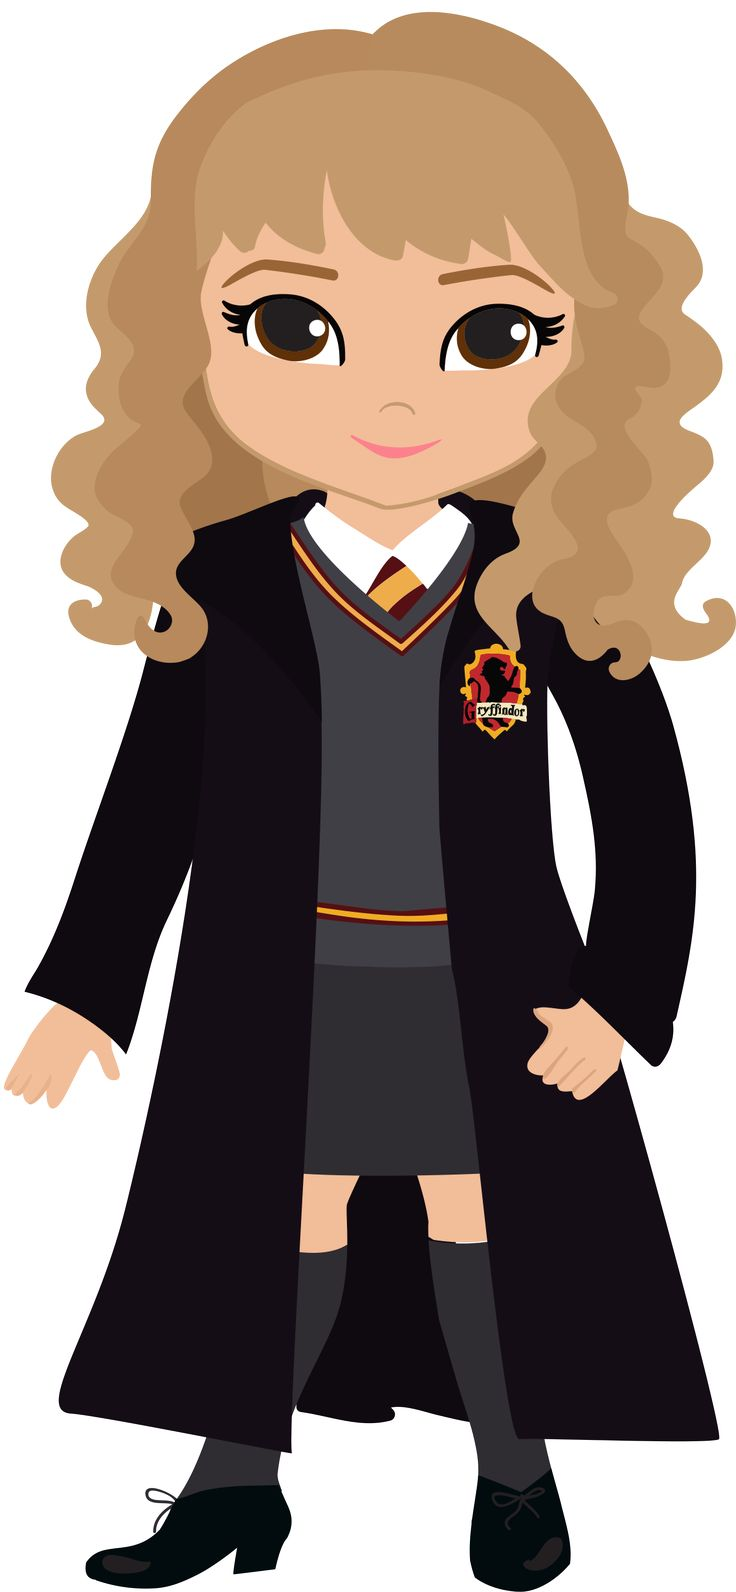 Harry potter harry potter pinterest harry potter for More clipart